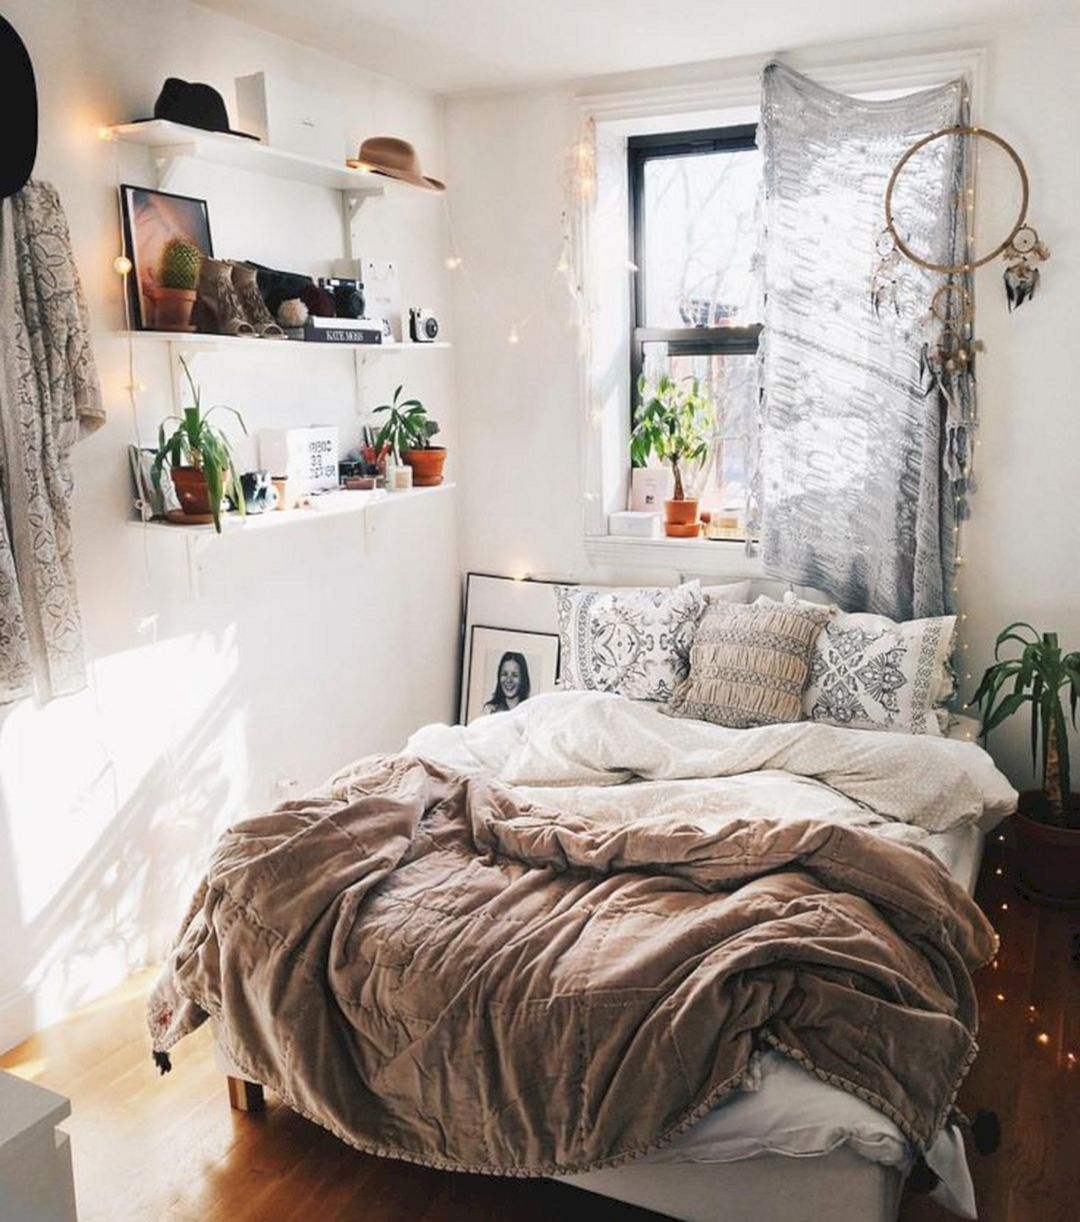 Astounding 30 Best Modern Bedroom Decorating For Your Cozy Bedroom Ideas Https Hroomy Com Bedroom 3 Cozy Small Bedrooms Remodel Bedroom Small Bedroom Remodel